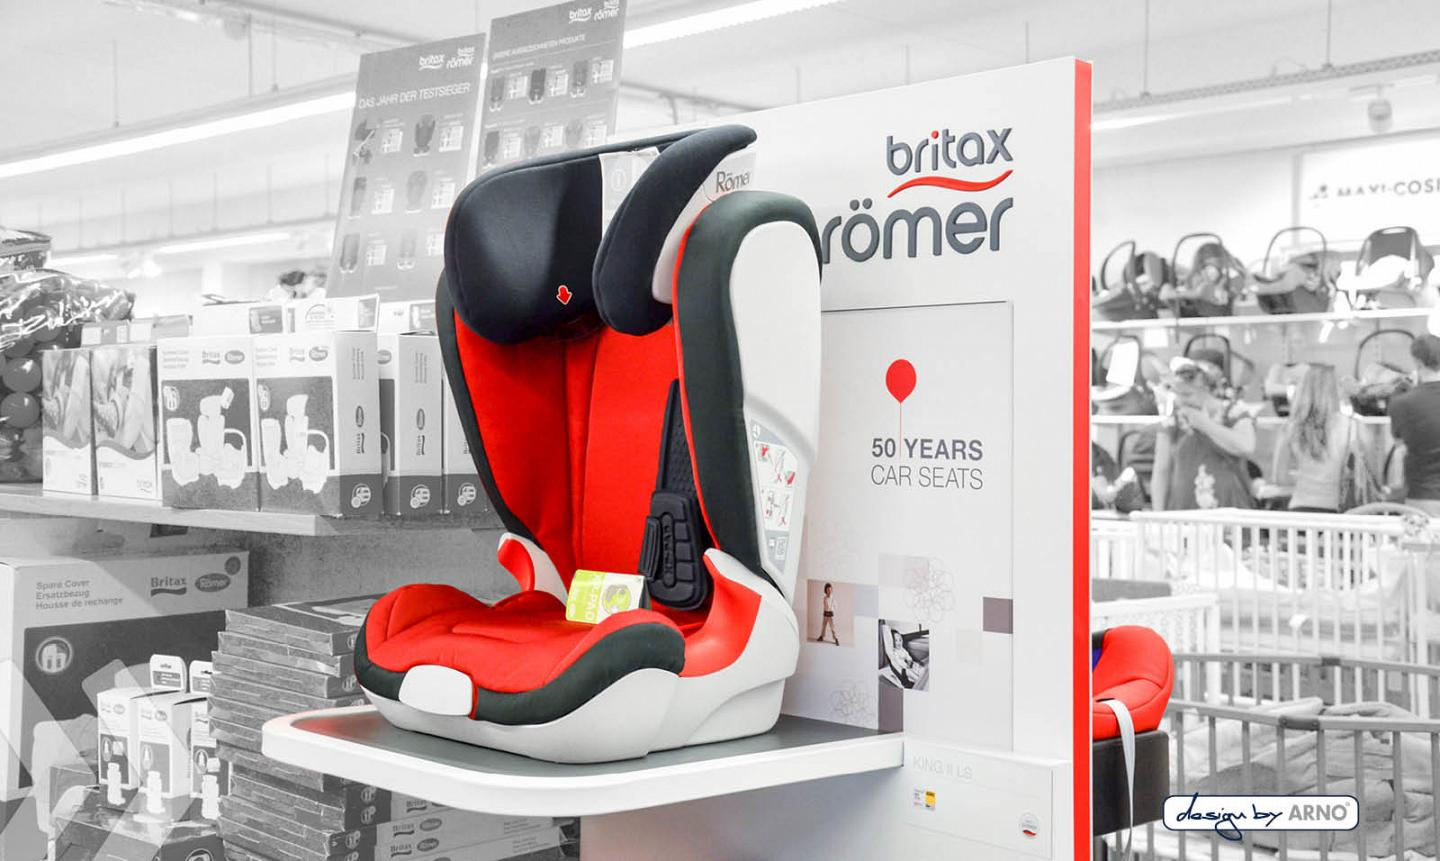 Britax Römer Display design by ARNO 03